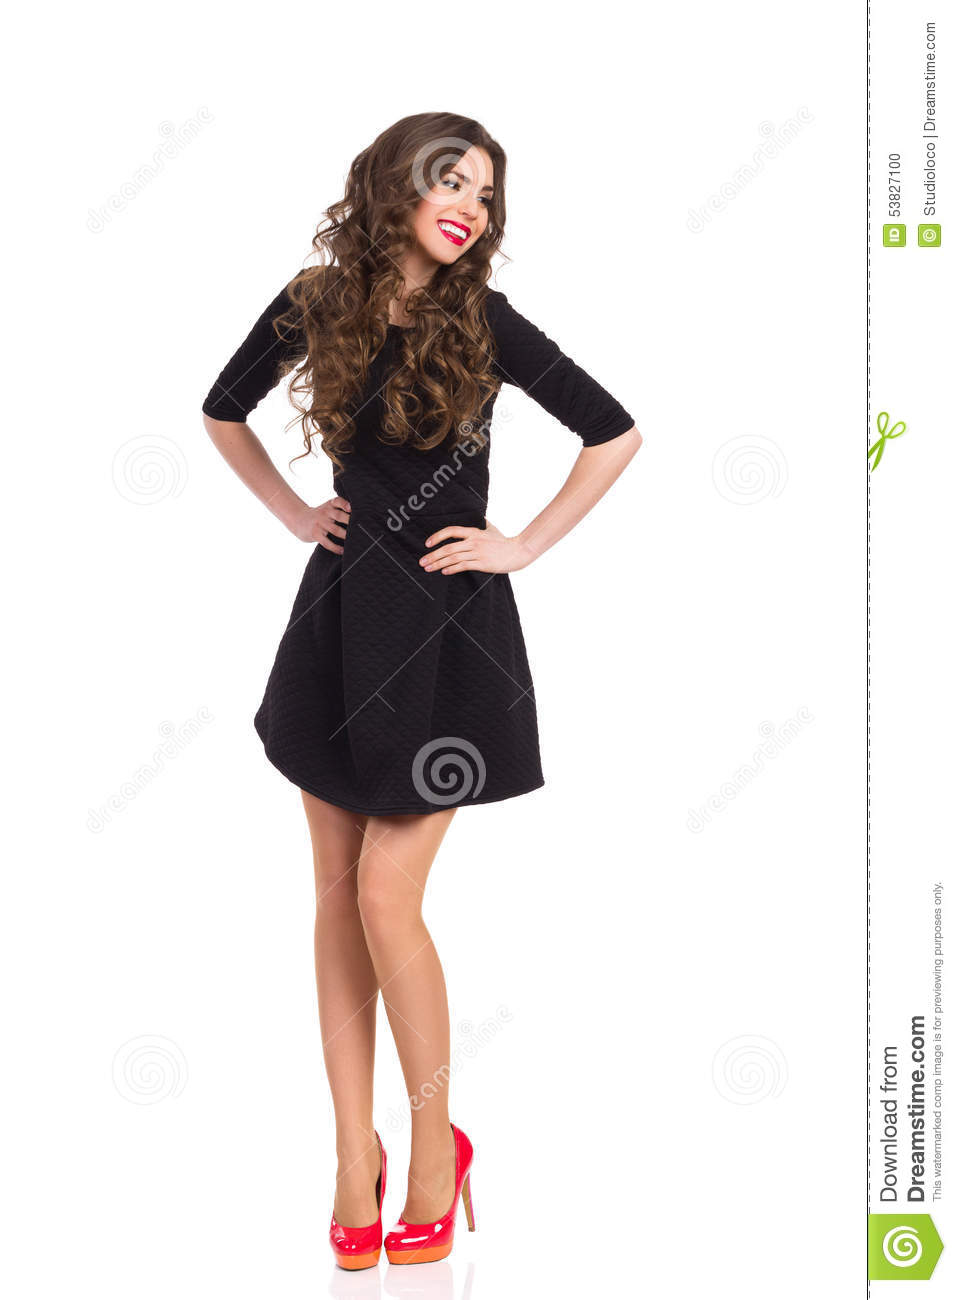 Happy Girl In Black Mini Dress And Red High Heels Stock Photo ...